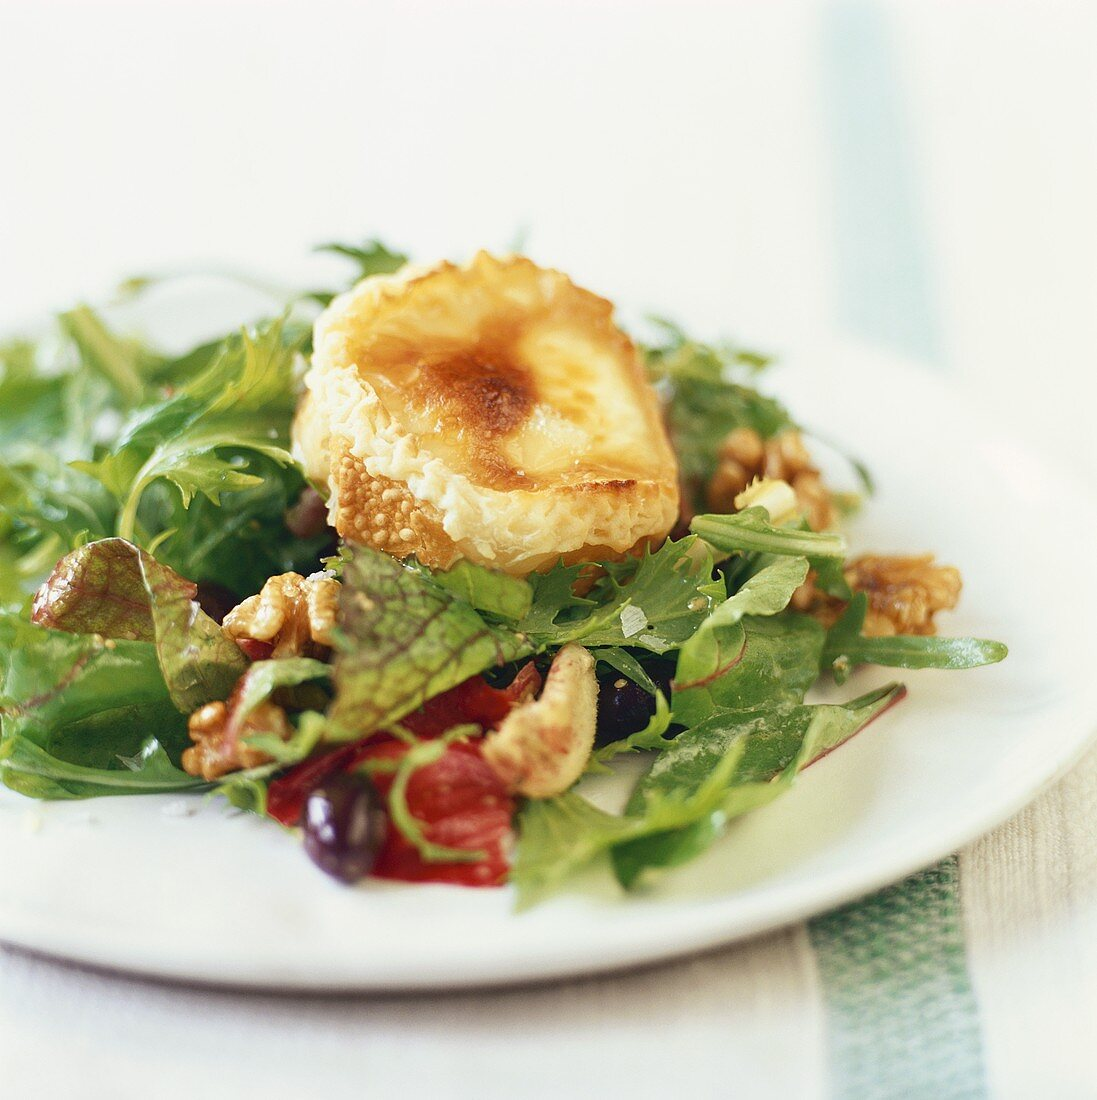 Warm goat's cheese on salad